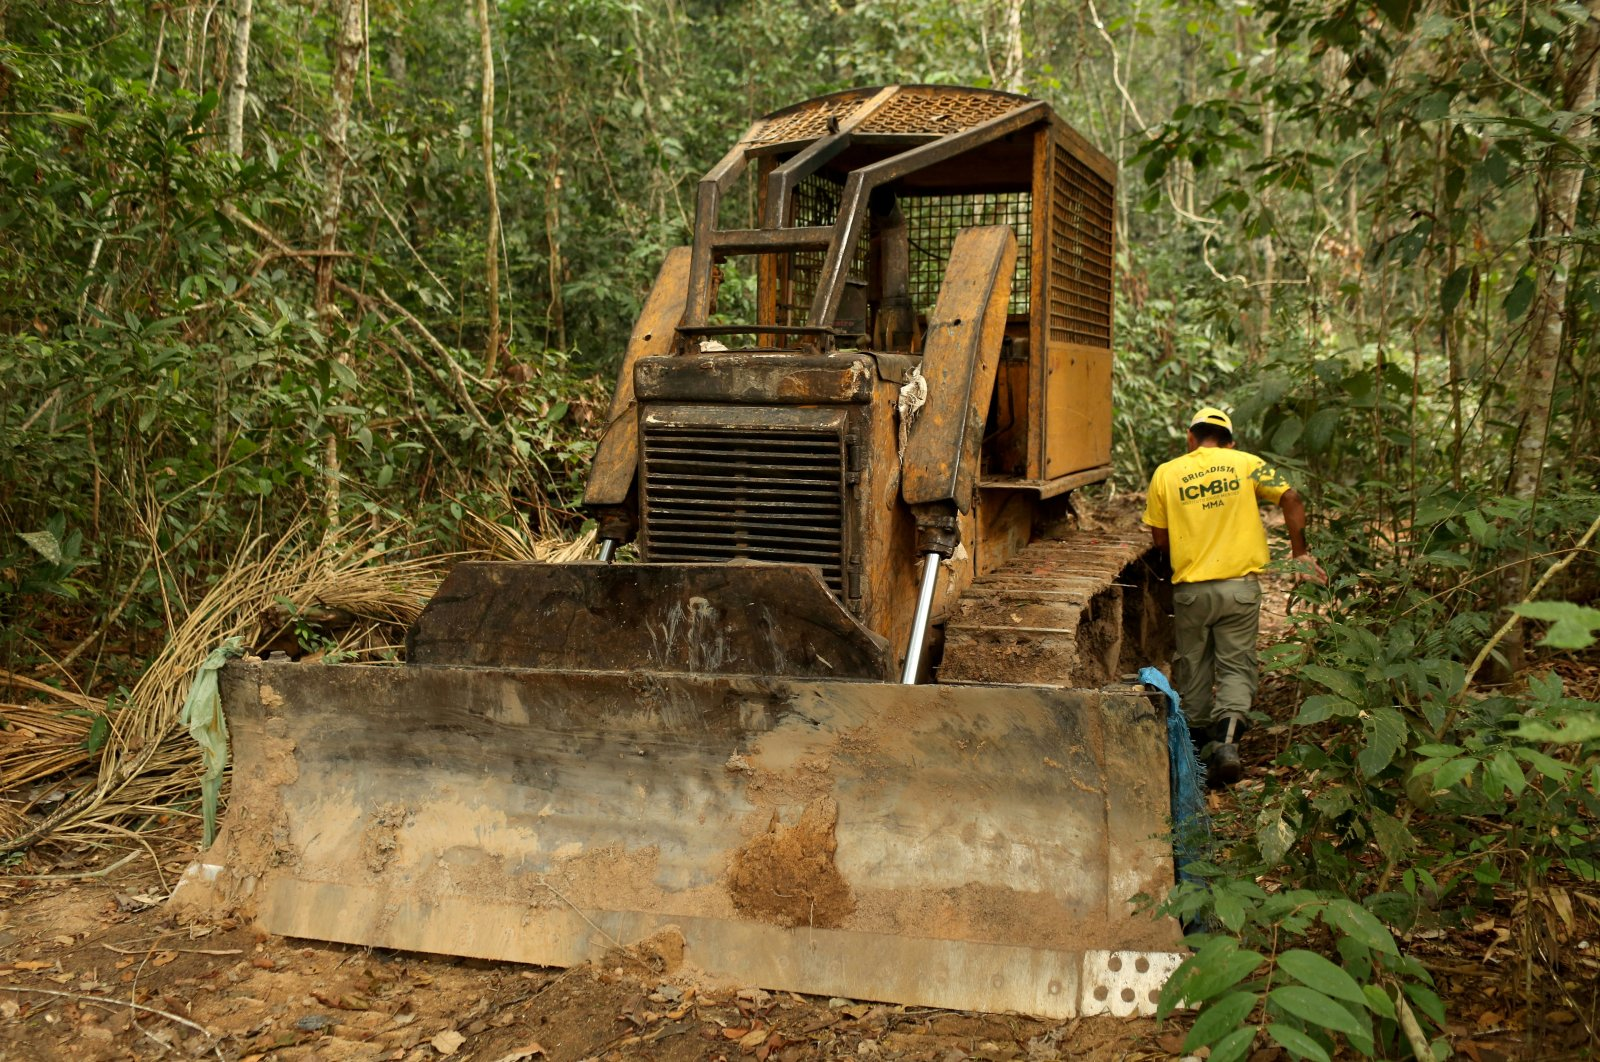 A member of the Chico Mendes Institute for Biodiversity Conservation (ICMBio) walks next a tractor used for deforestation at the National Forest Bom Futuro in Rio Pardo, Rondonia State, Brazil, Sept. 13, 2019. (Reuters Photo)